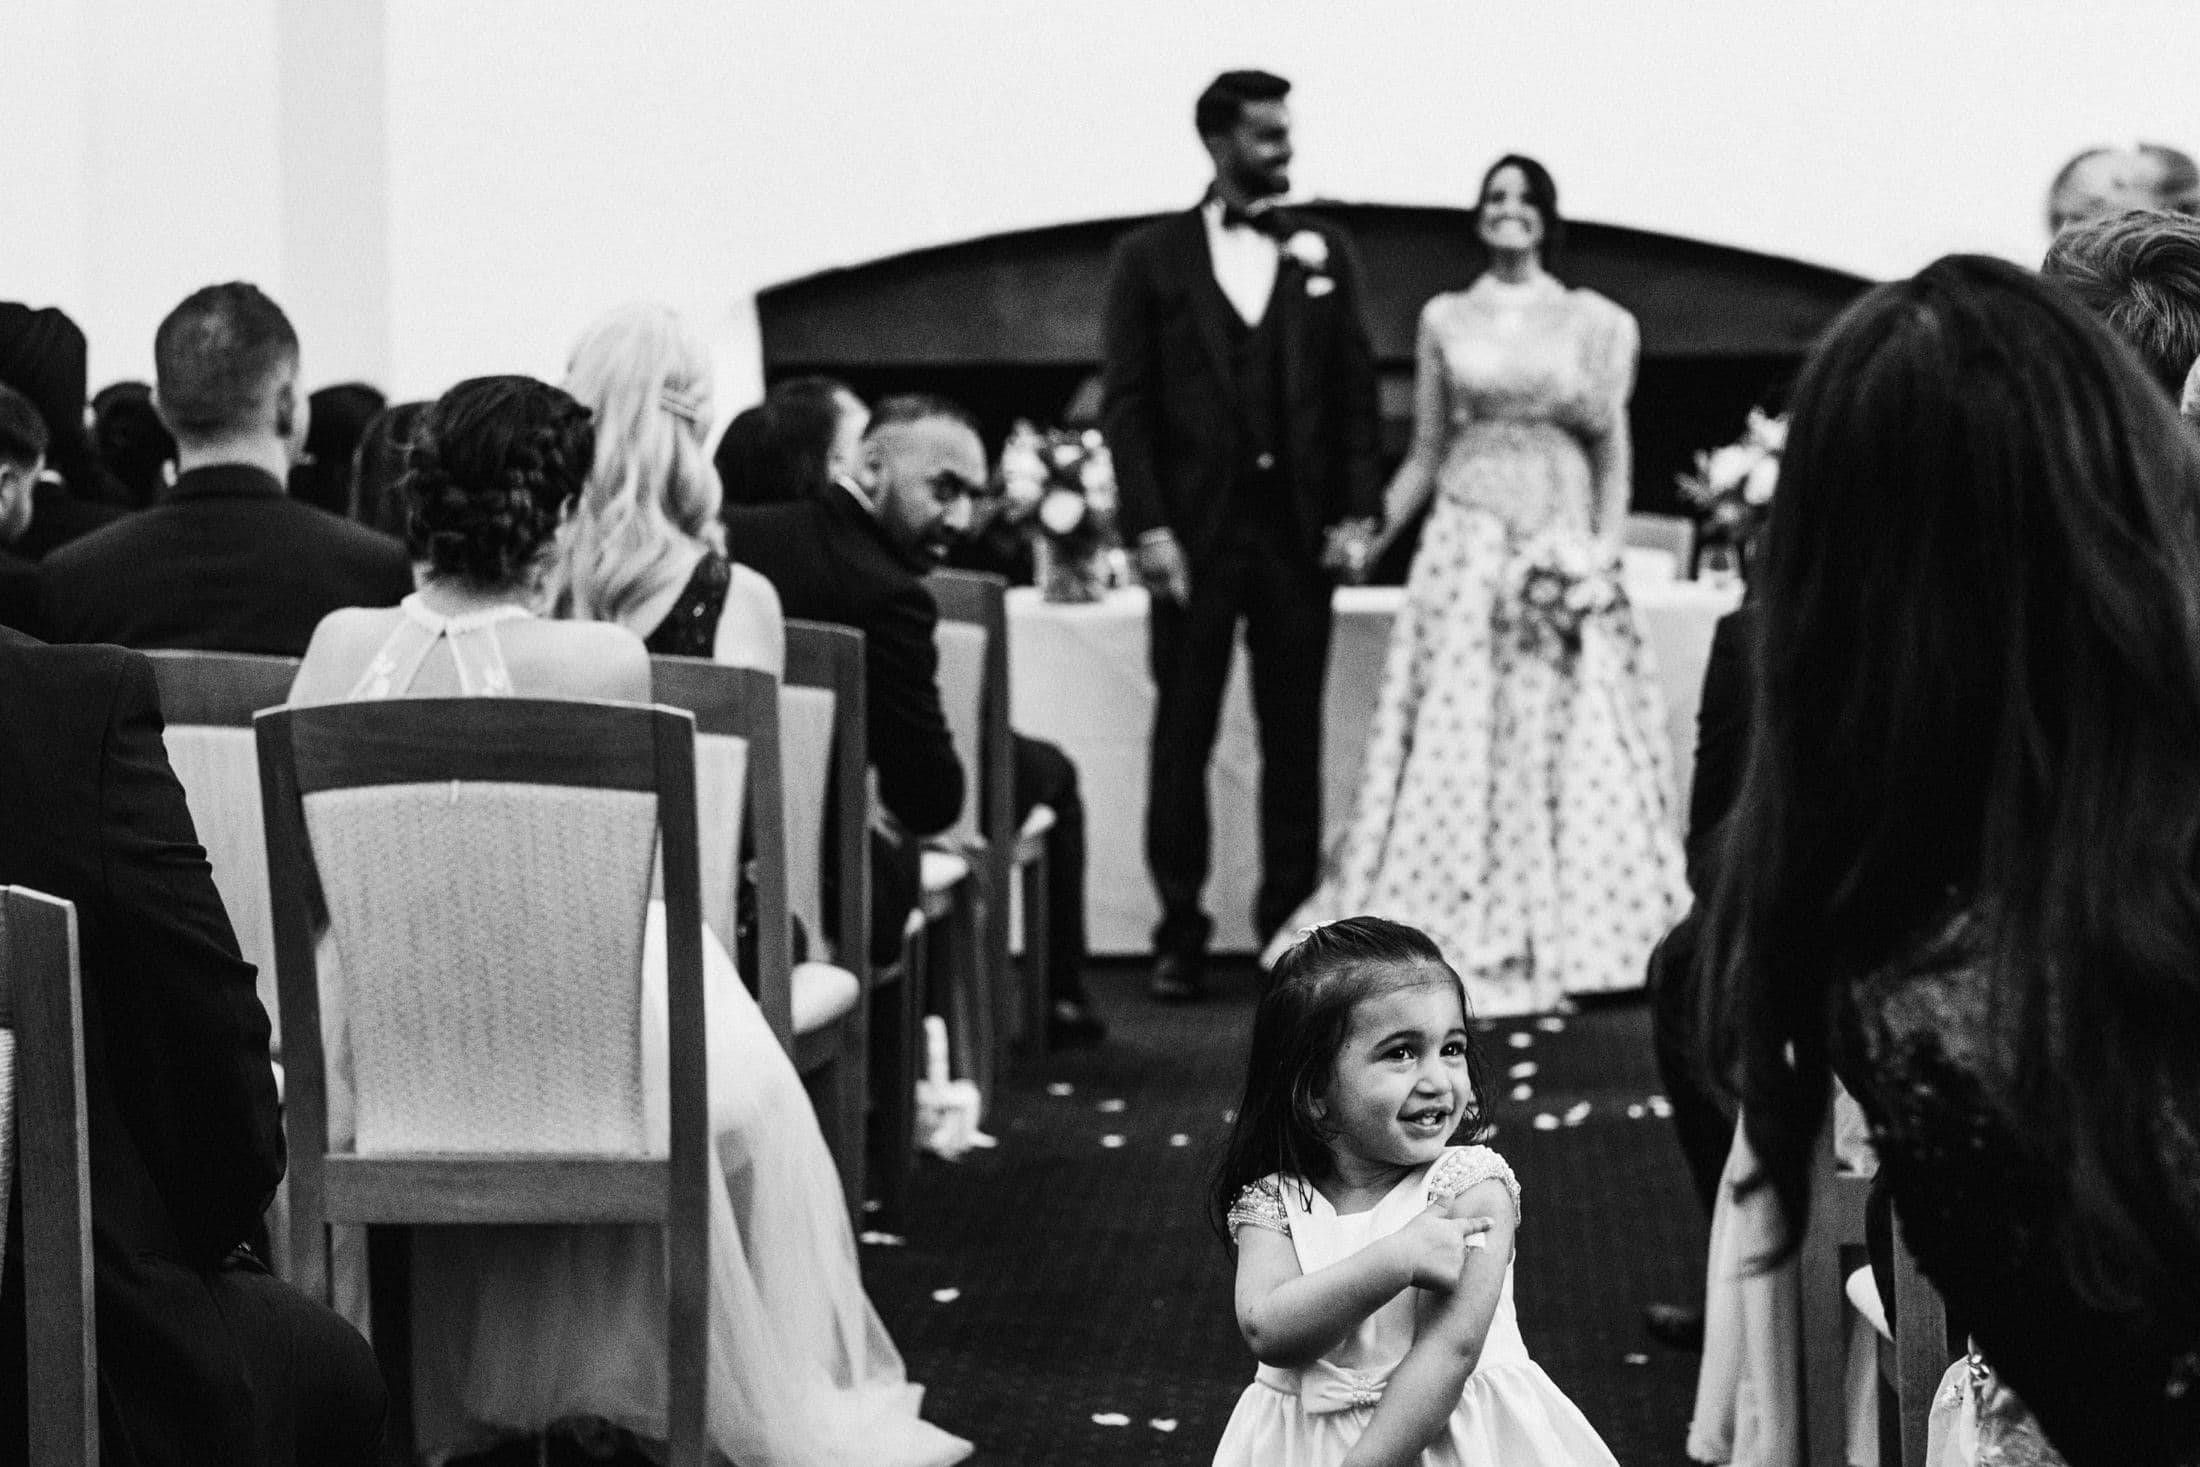 Blenheim Palace wedding ceremony flower girl stealing the show